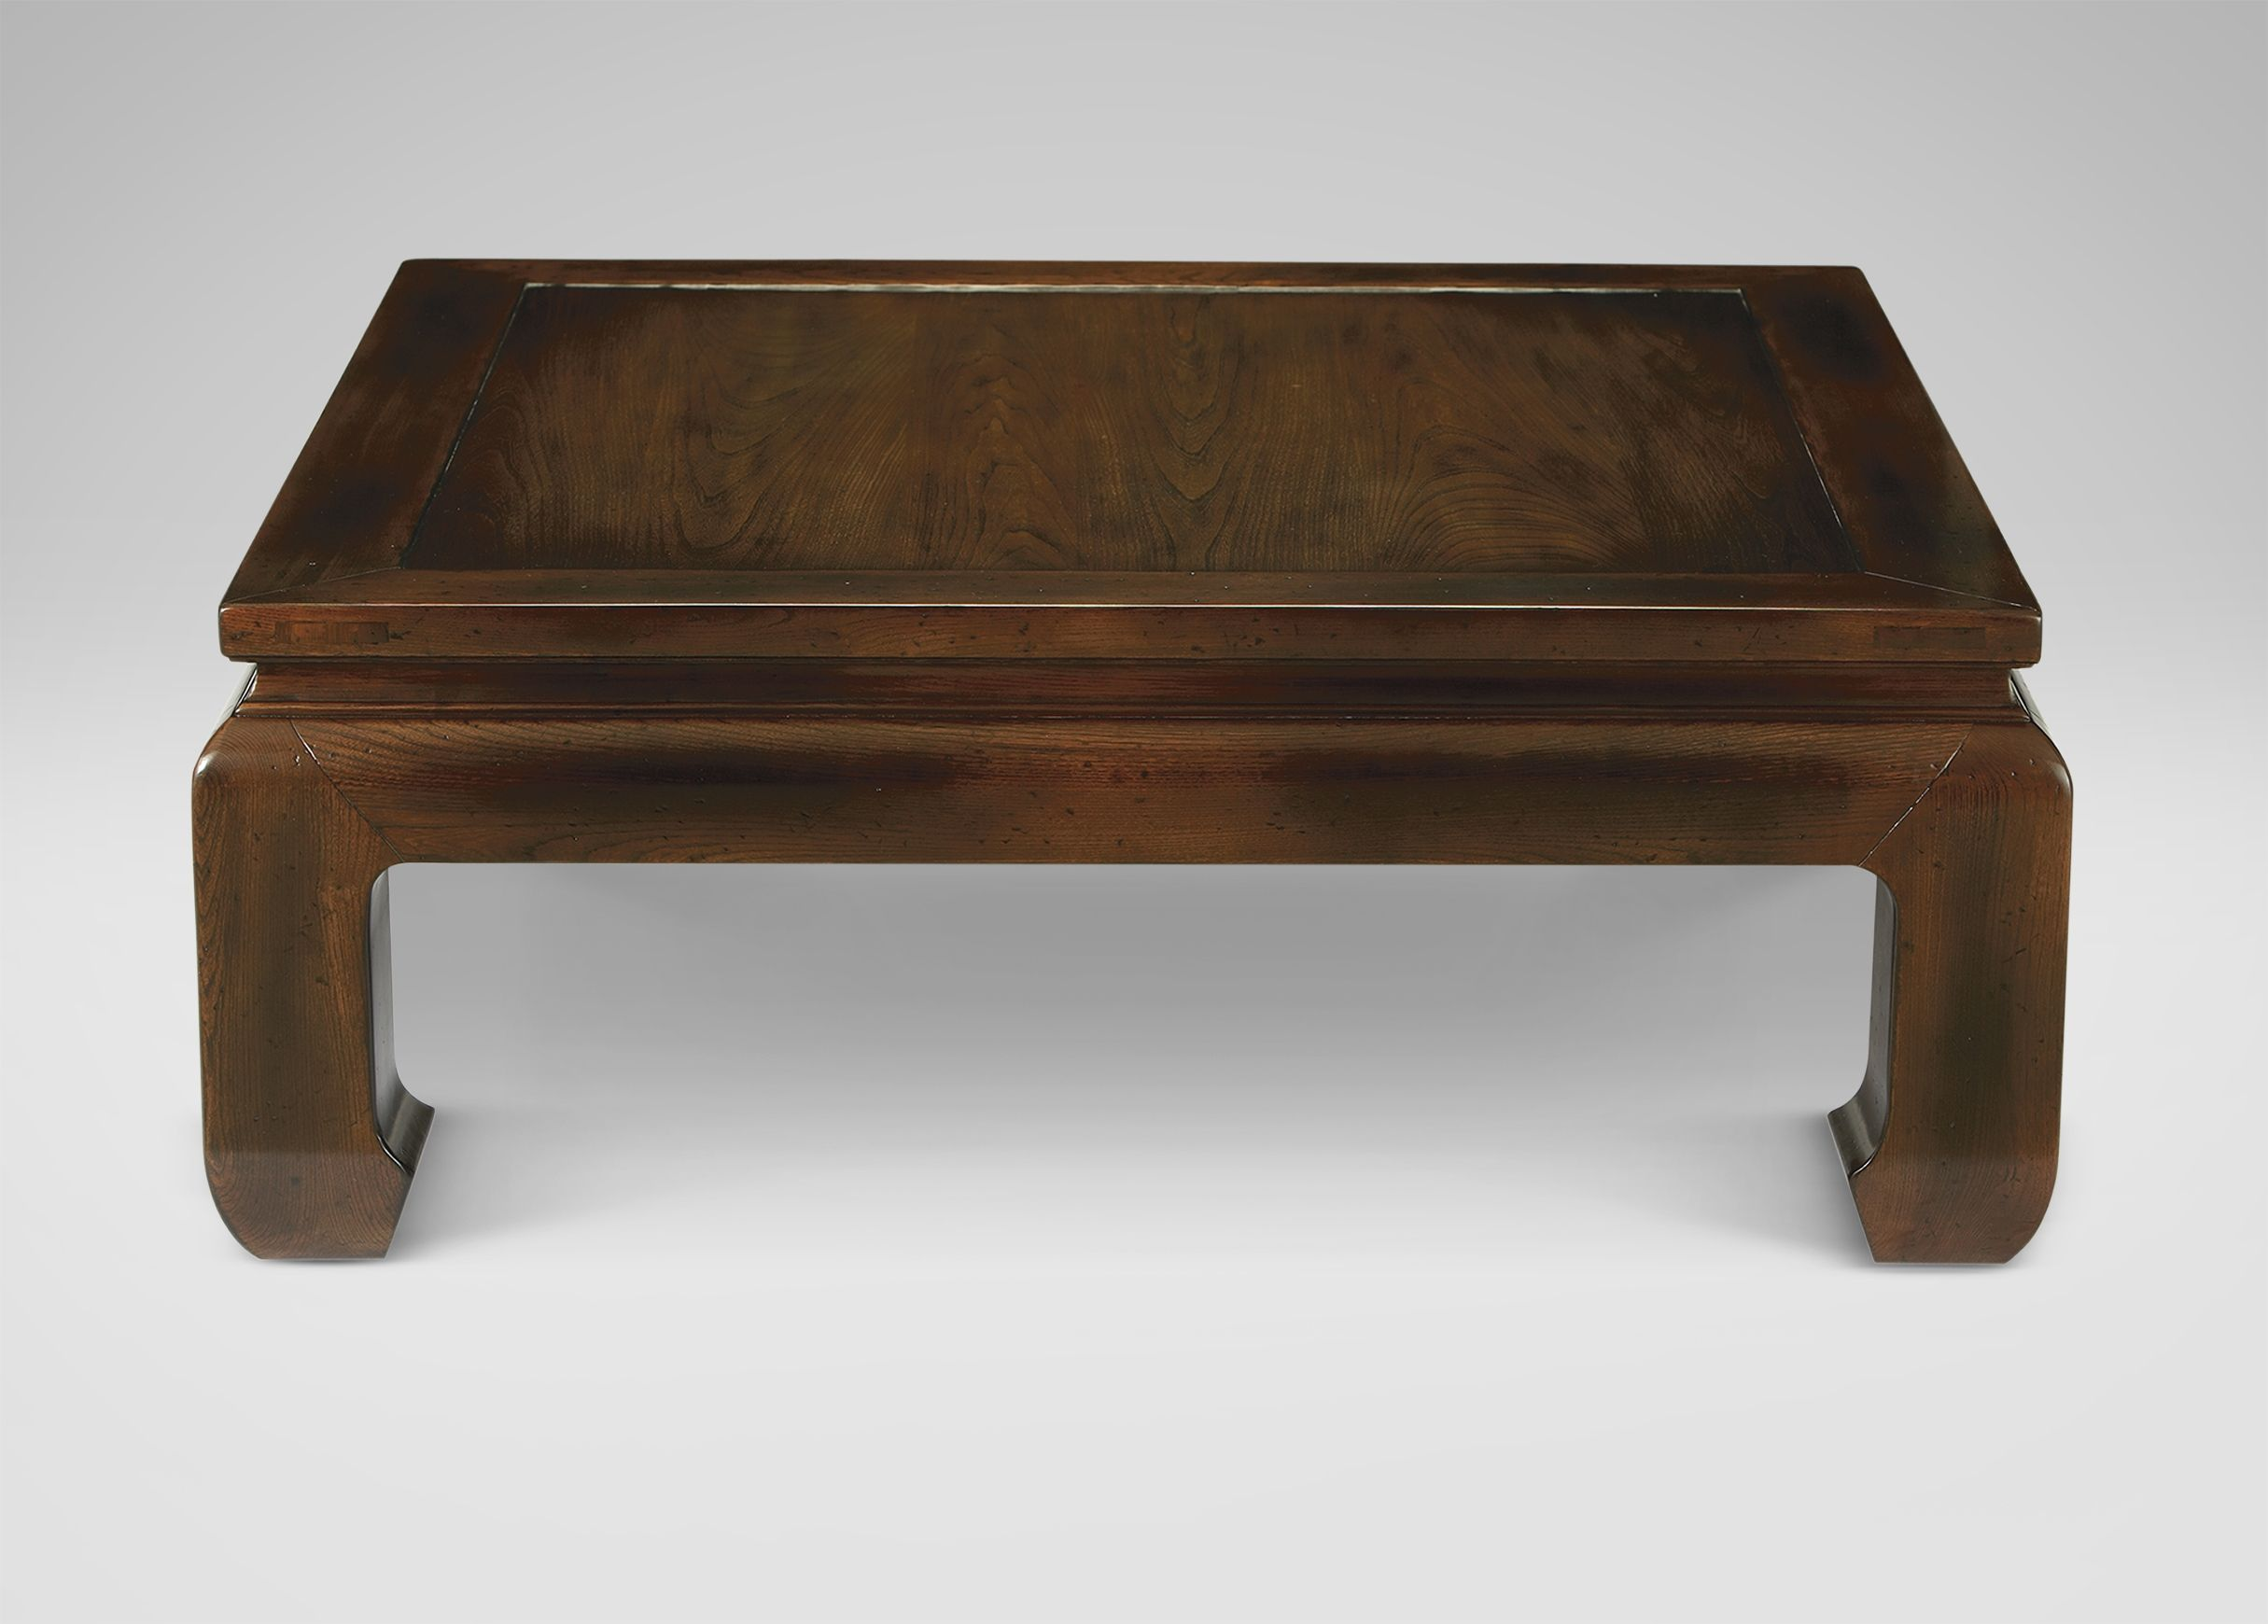 Ethan Allen Square Coffee Table With Drawers